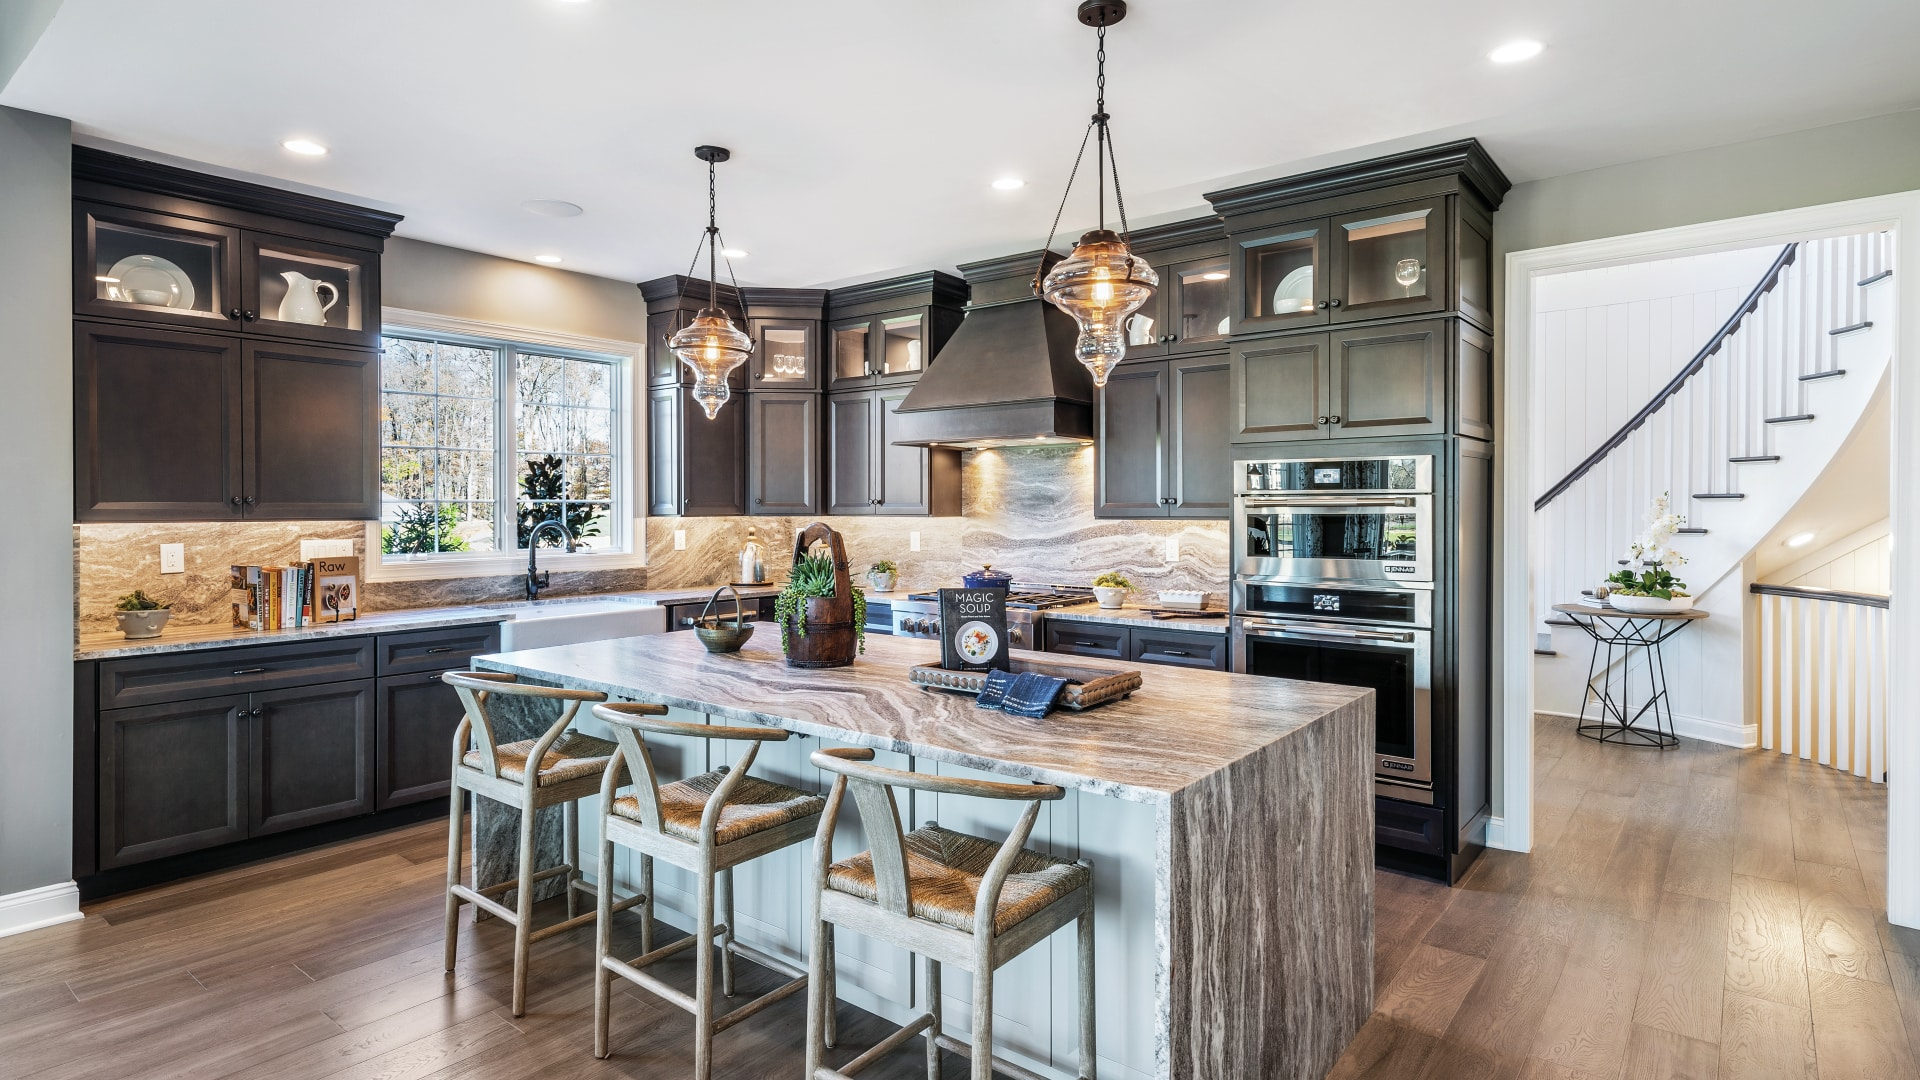 Open floor plans with high-end kitchen designs